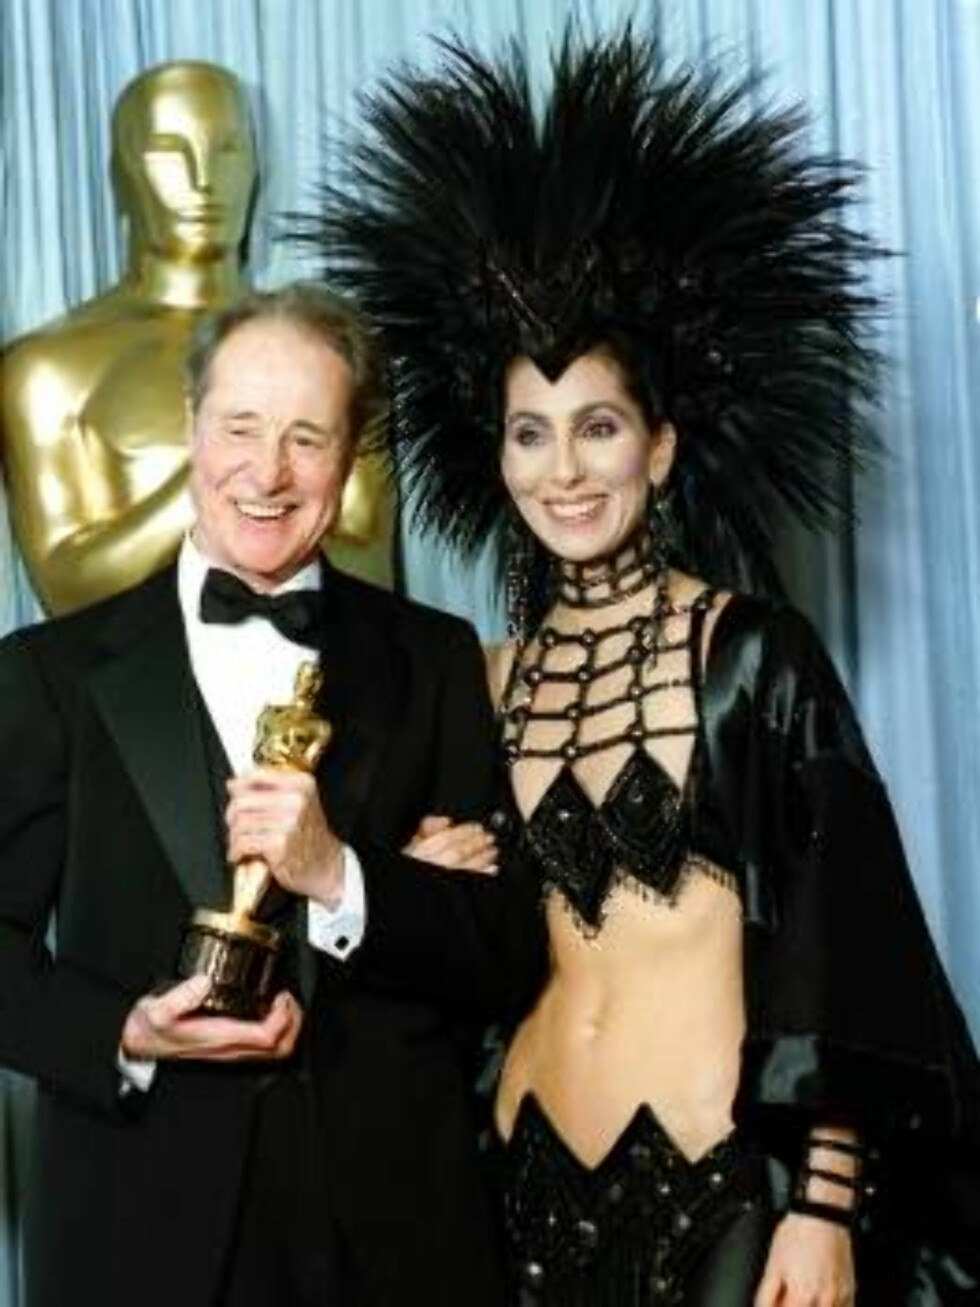 ** FILE ** Cher wears a creation by designer Bob Mackie as she poses with actor Don Ameche after presenting him with the Oscar for best supporting actor at the Academy Awards in Los Angeles, March 24, 1986. Over the years, Cher has been a prime and often Foto: AP